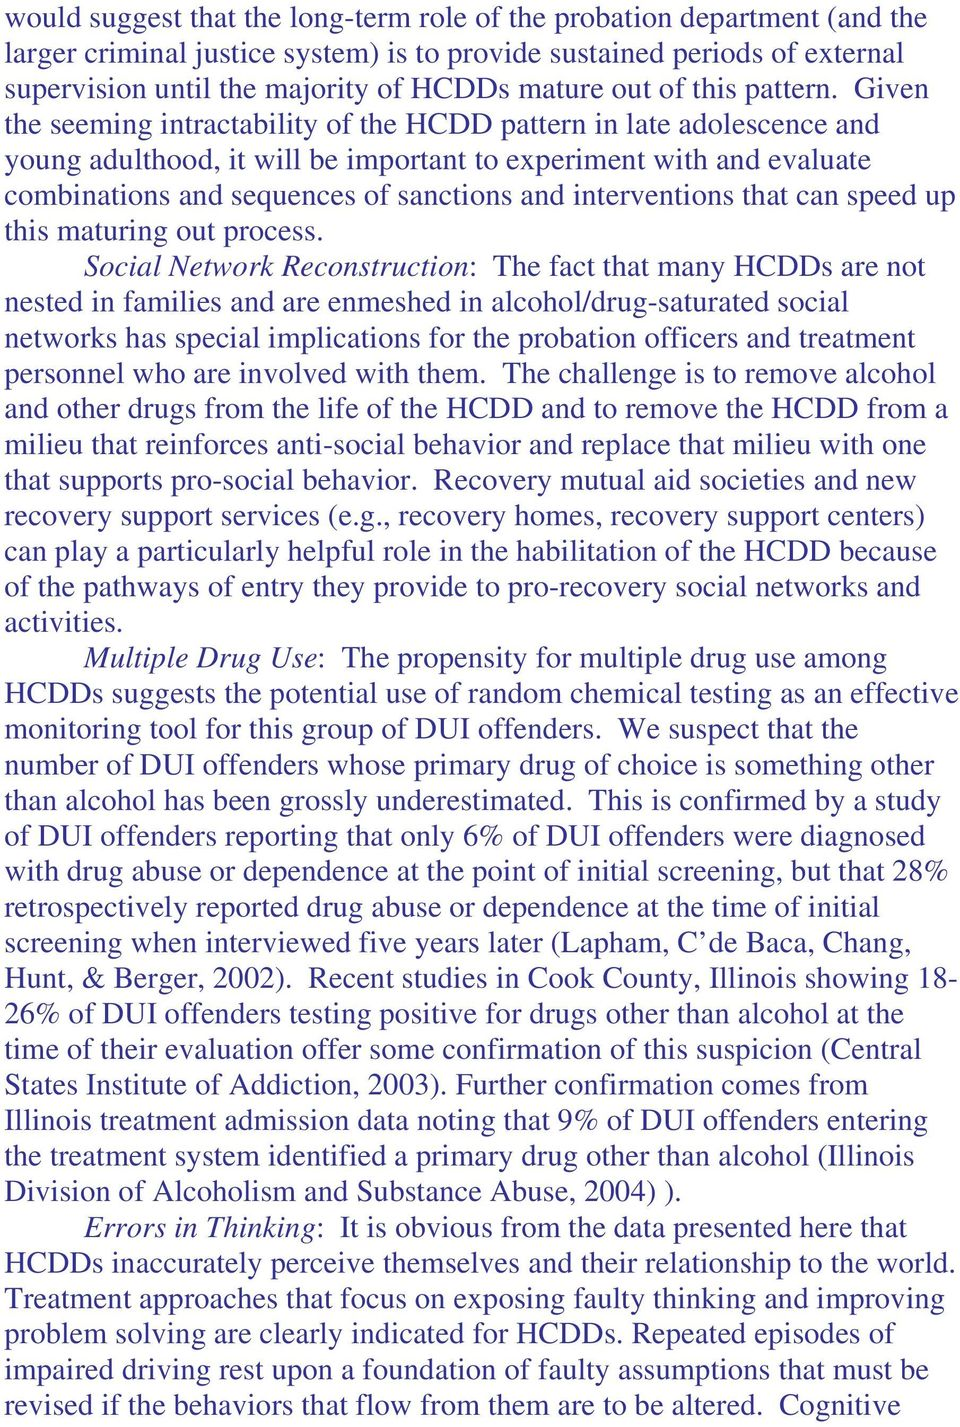 Given the seeming intractability of the HCDD pattern in late adolescence and young adulthood, it will be important to experiment with and evaluate combinations and sequences of sanctions and